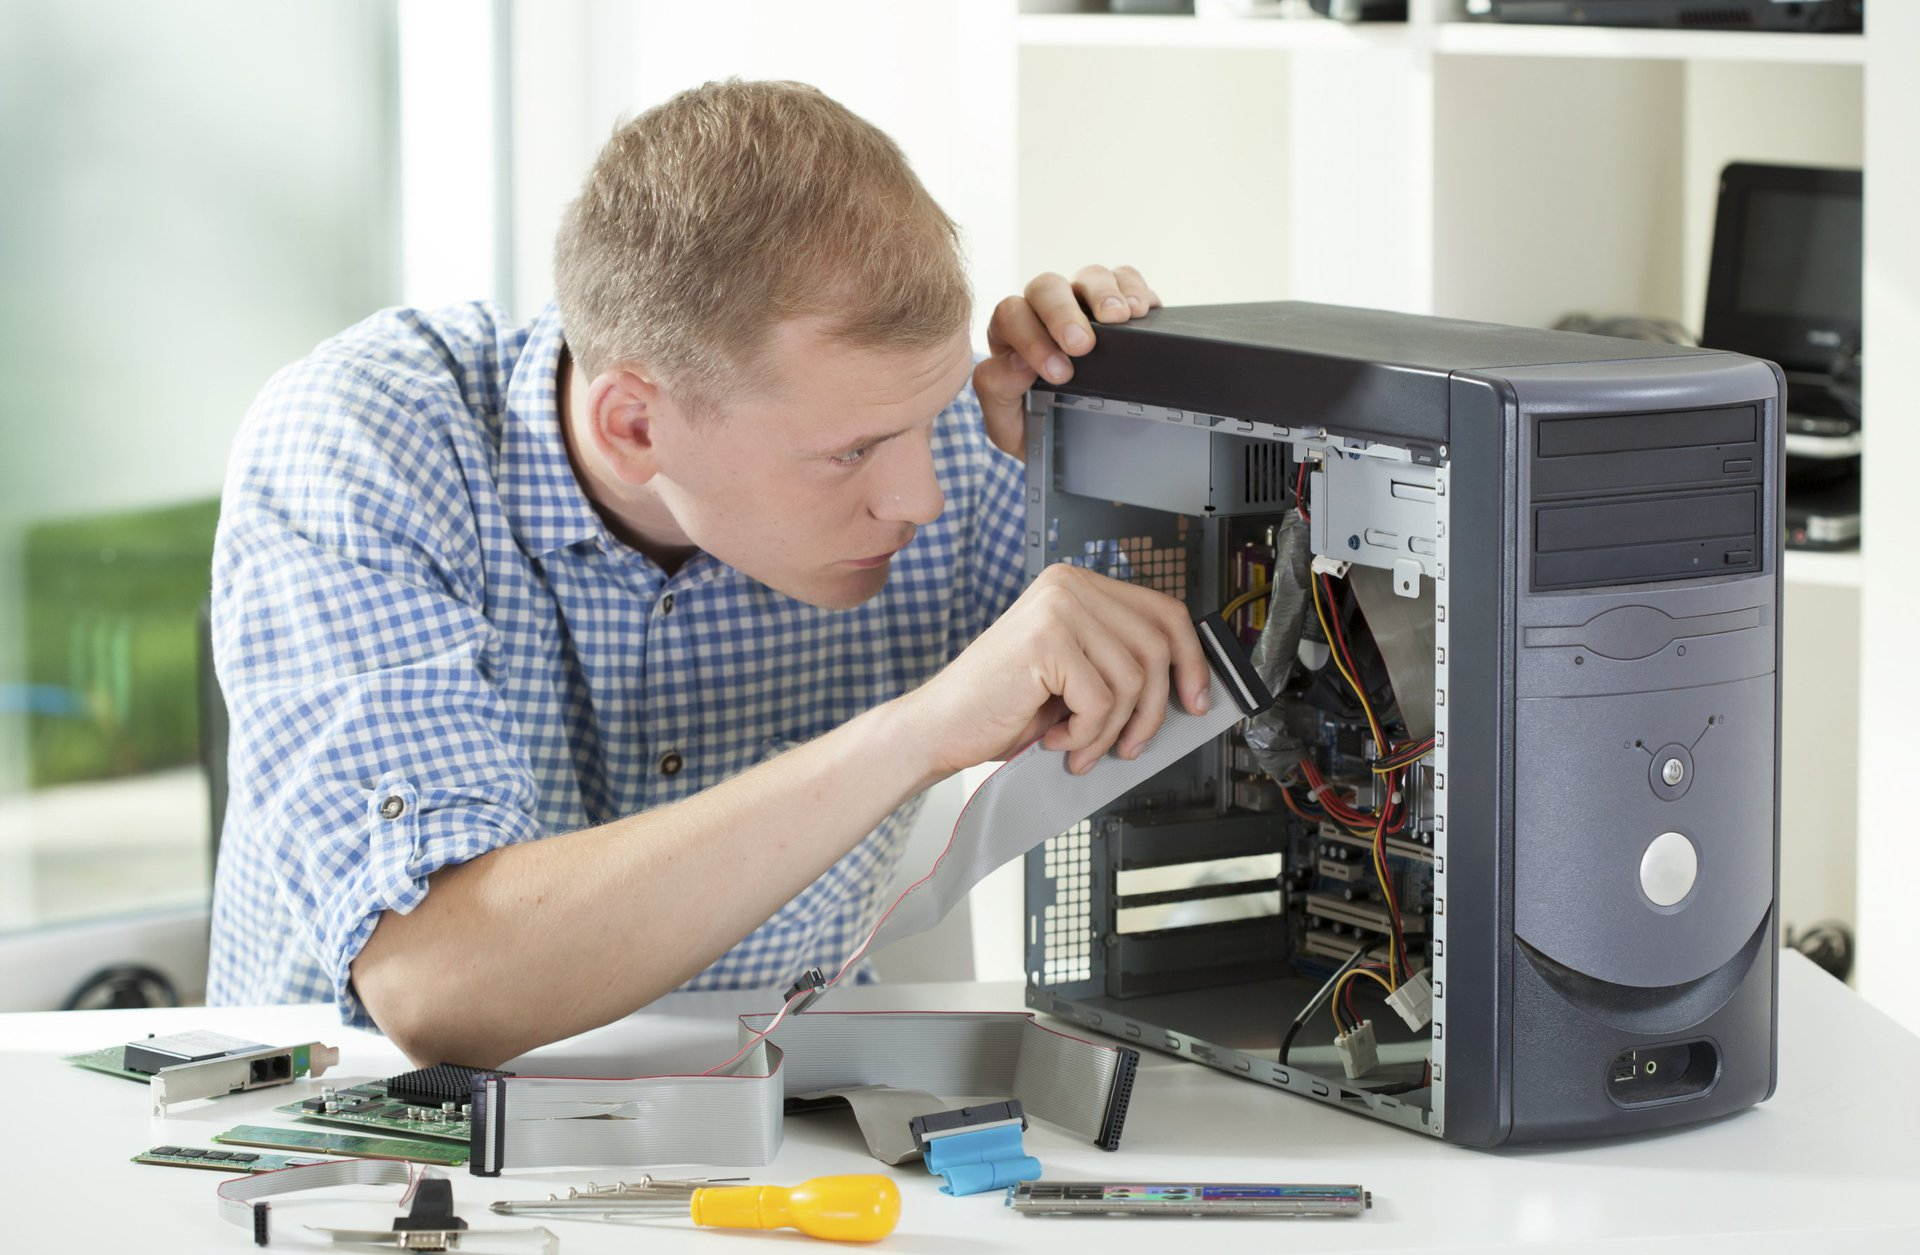 Hastings FL Onsite Computer PC & Printer Repairs, Networking, Voice & Data Cabling Solutions